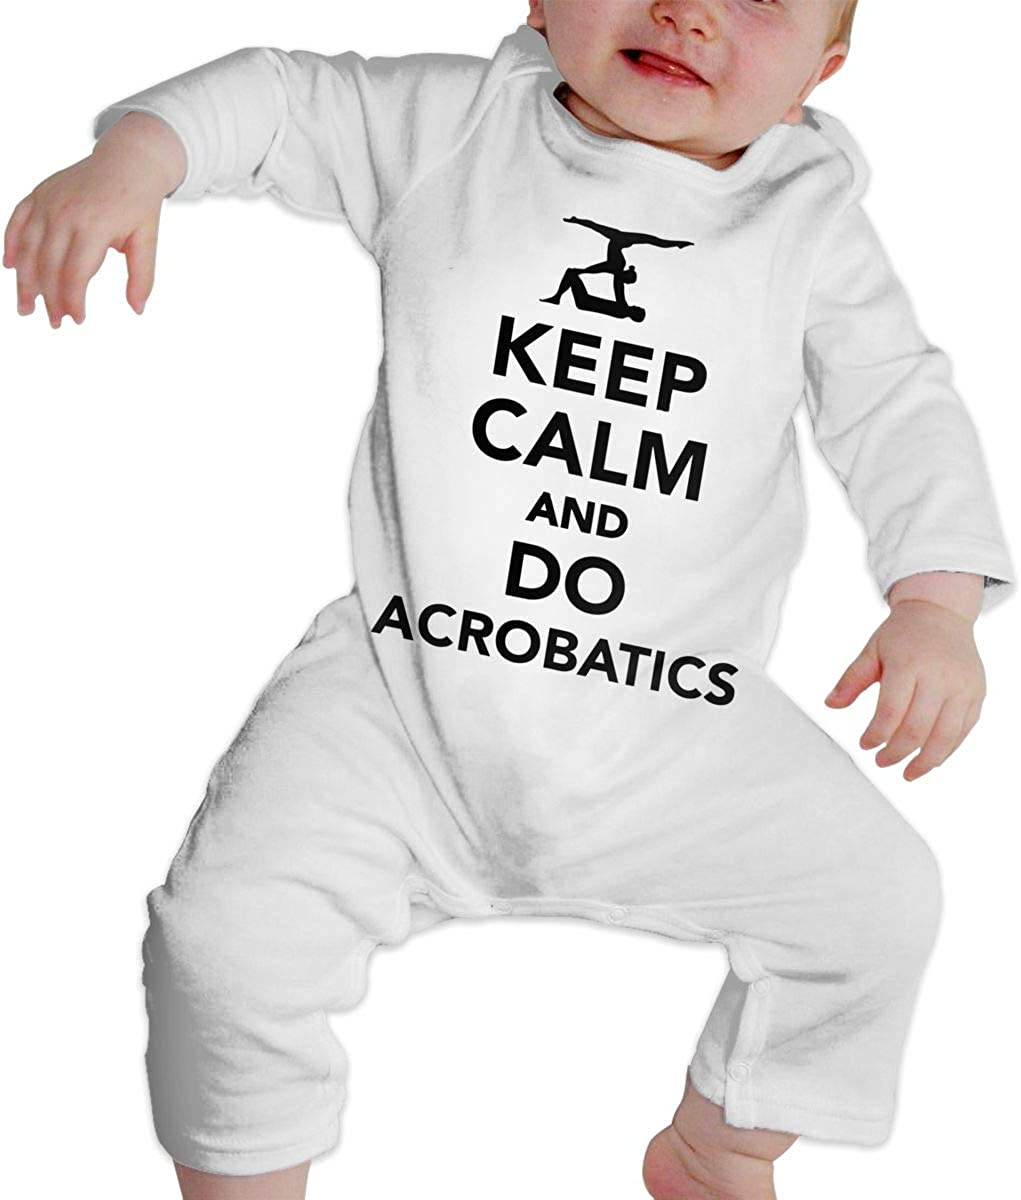 YELTY6F Keep Calm and Do Acrobatics Printed Baby Jumpsuit Long Sleeve Outfits White